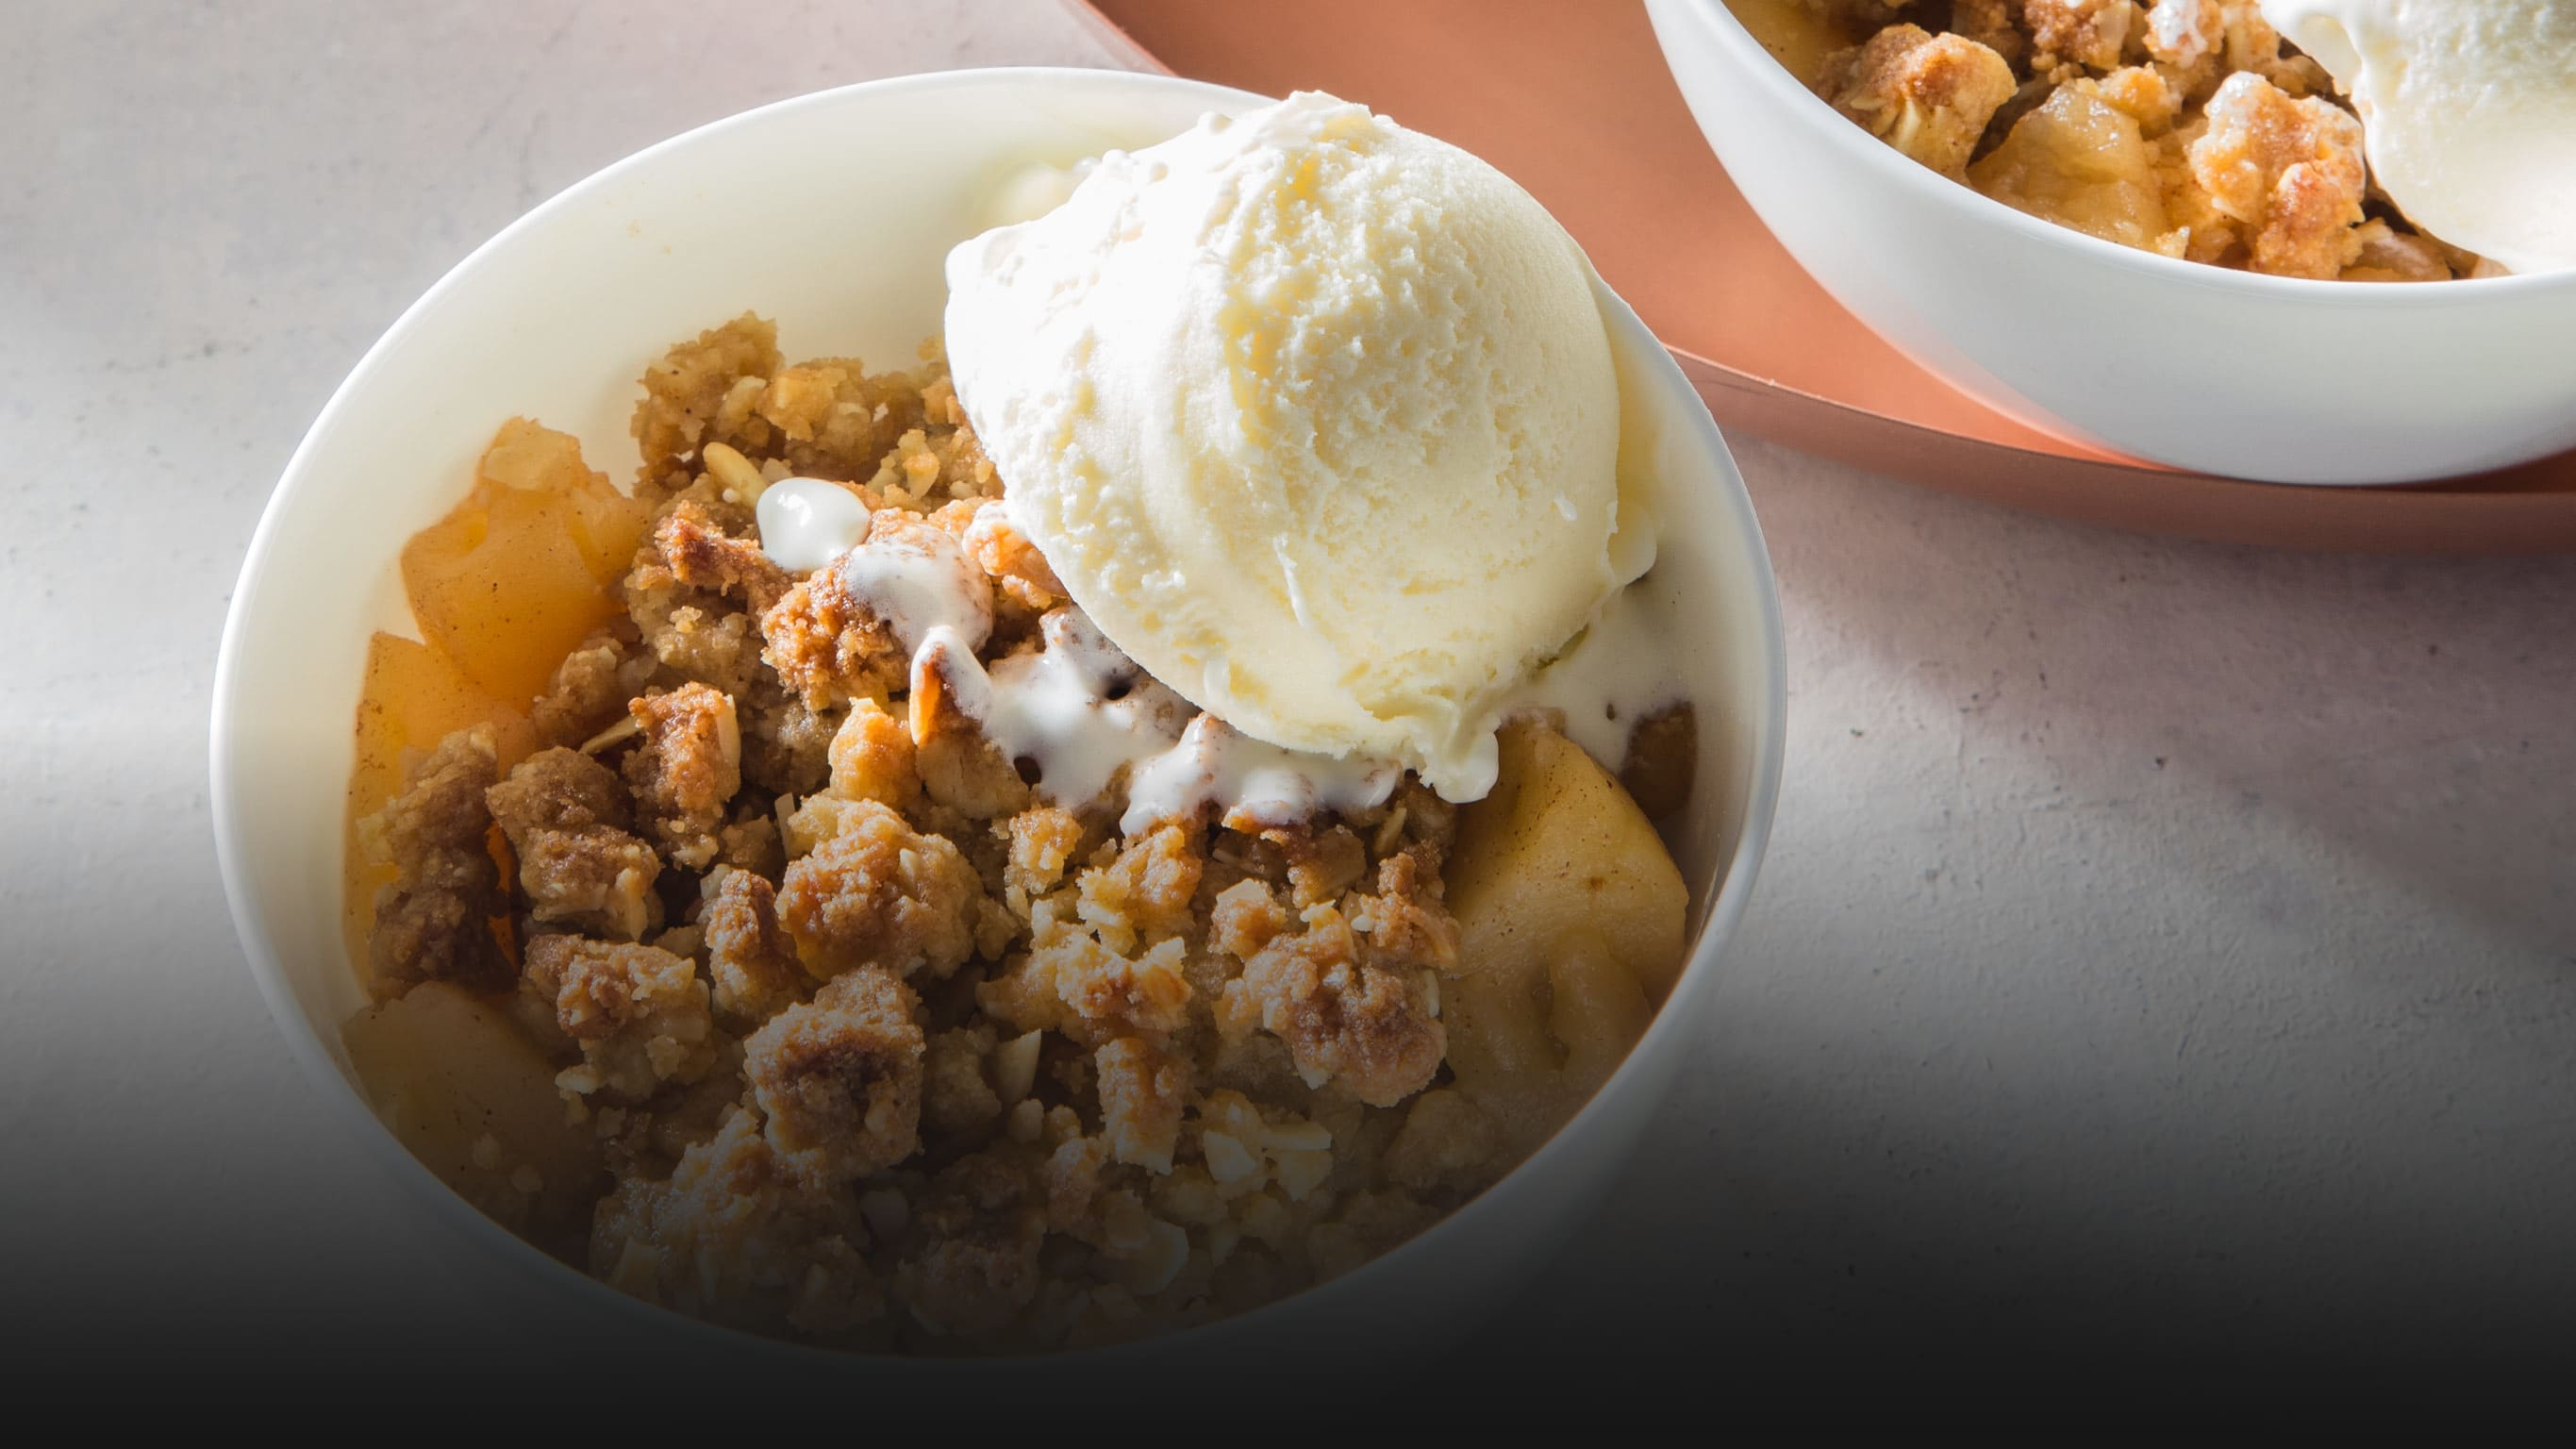 What Your Apple Crumble Needs Is More Apples